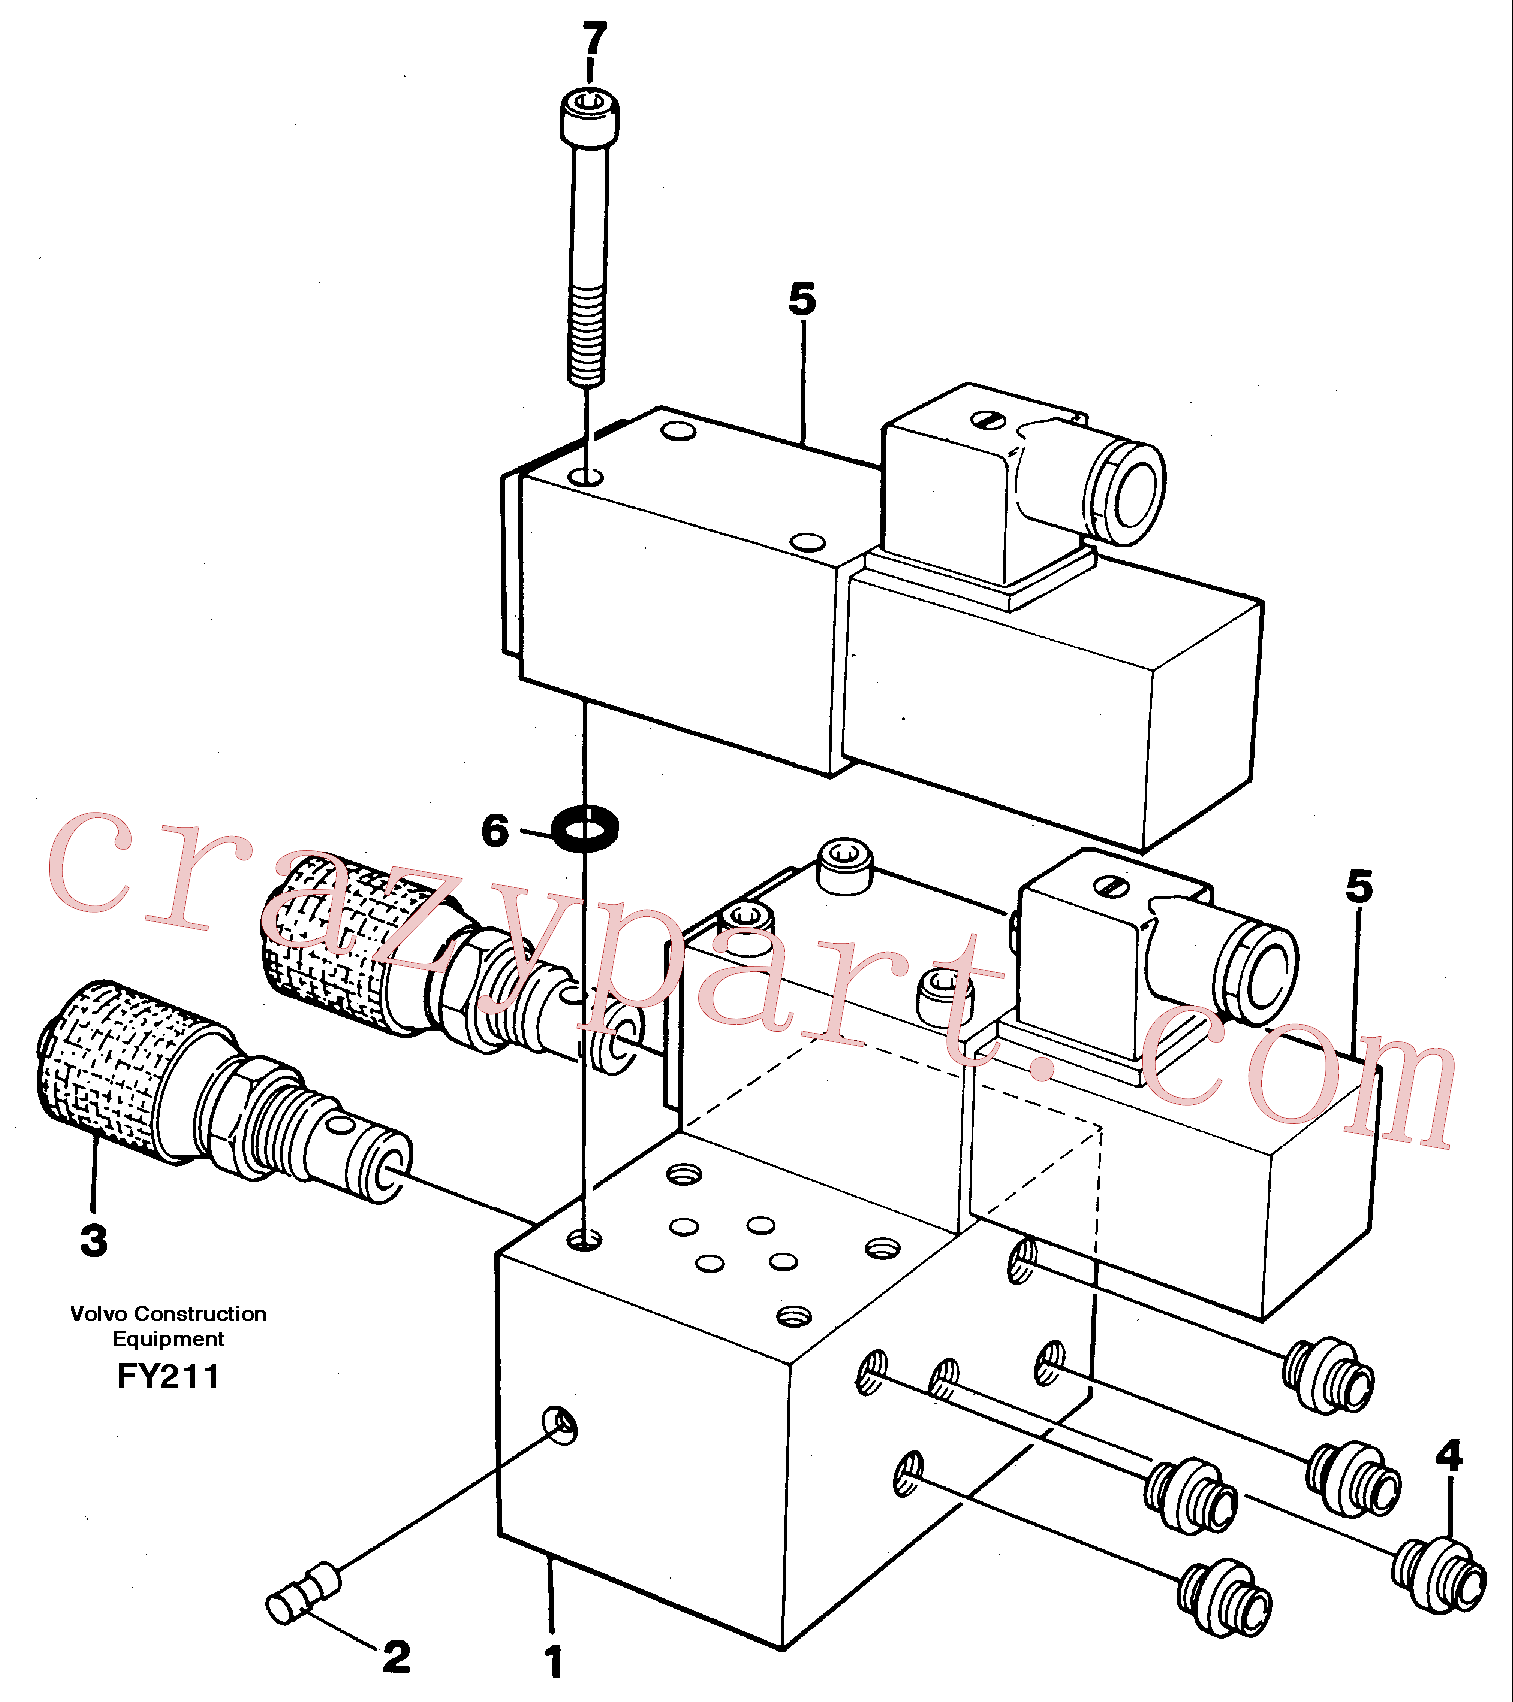 VOE14243113 for Volvo Control block, end pos. dampening(FY211 assembly)